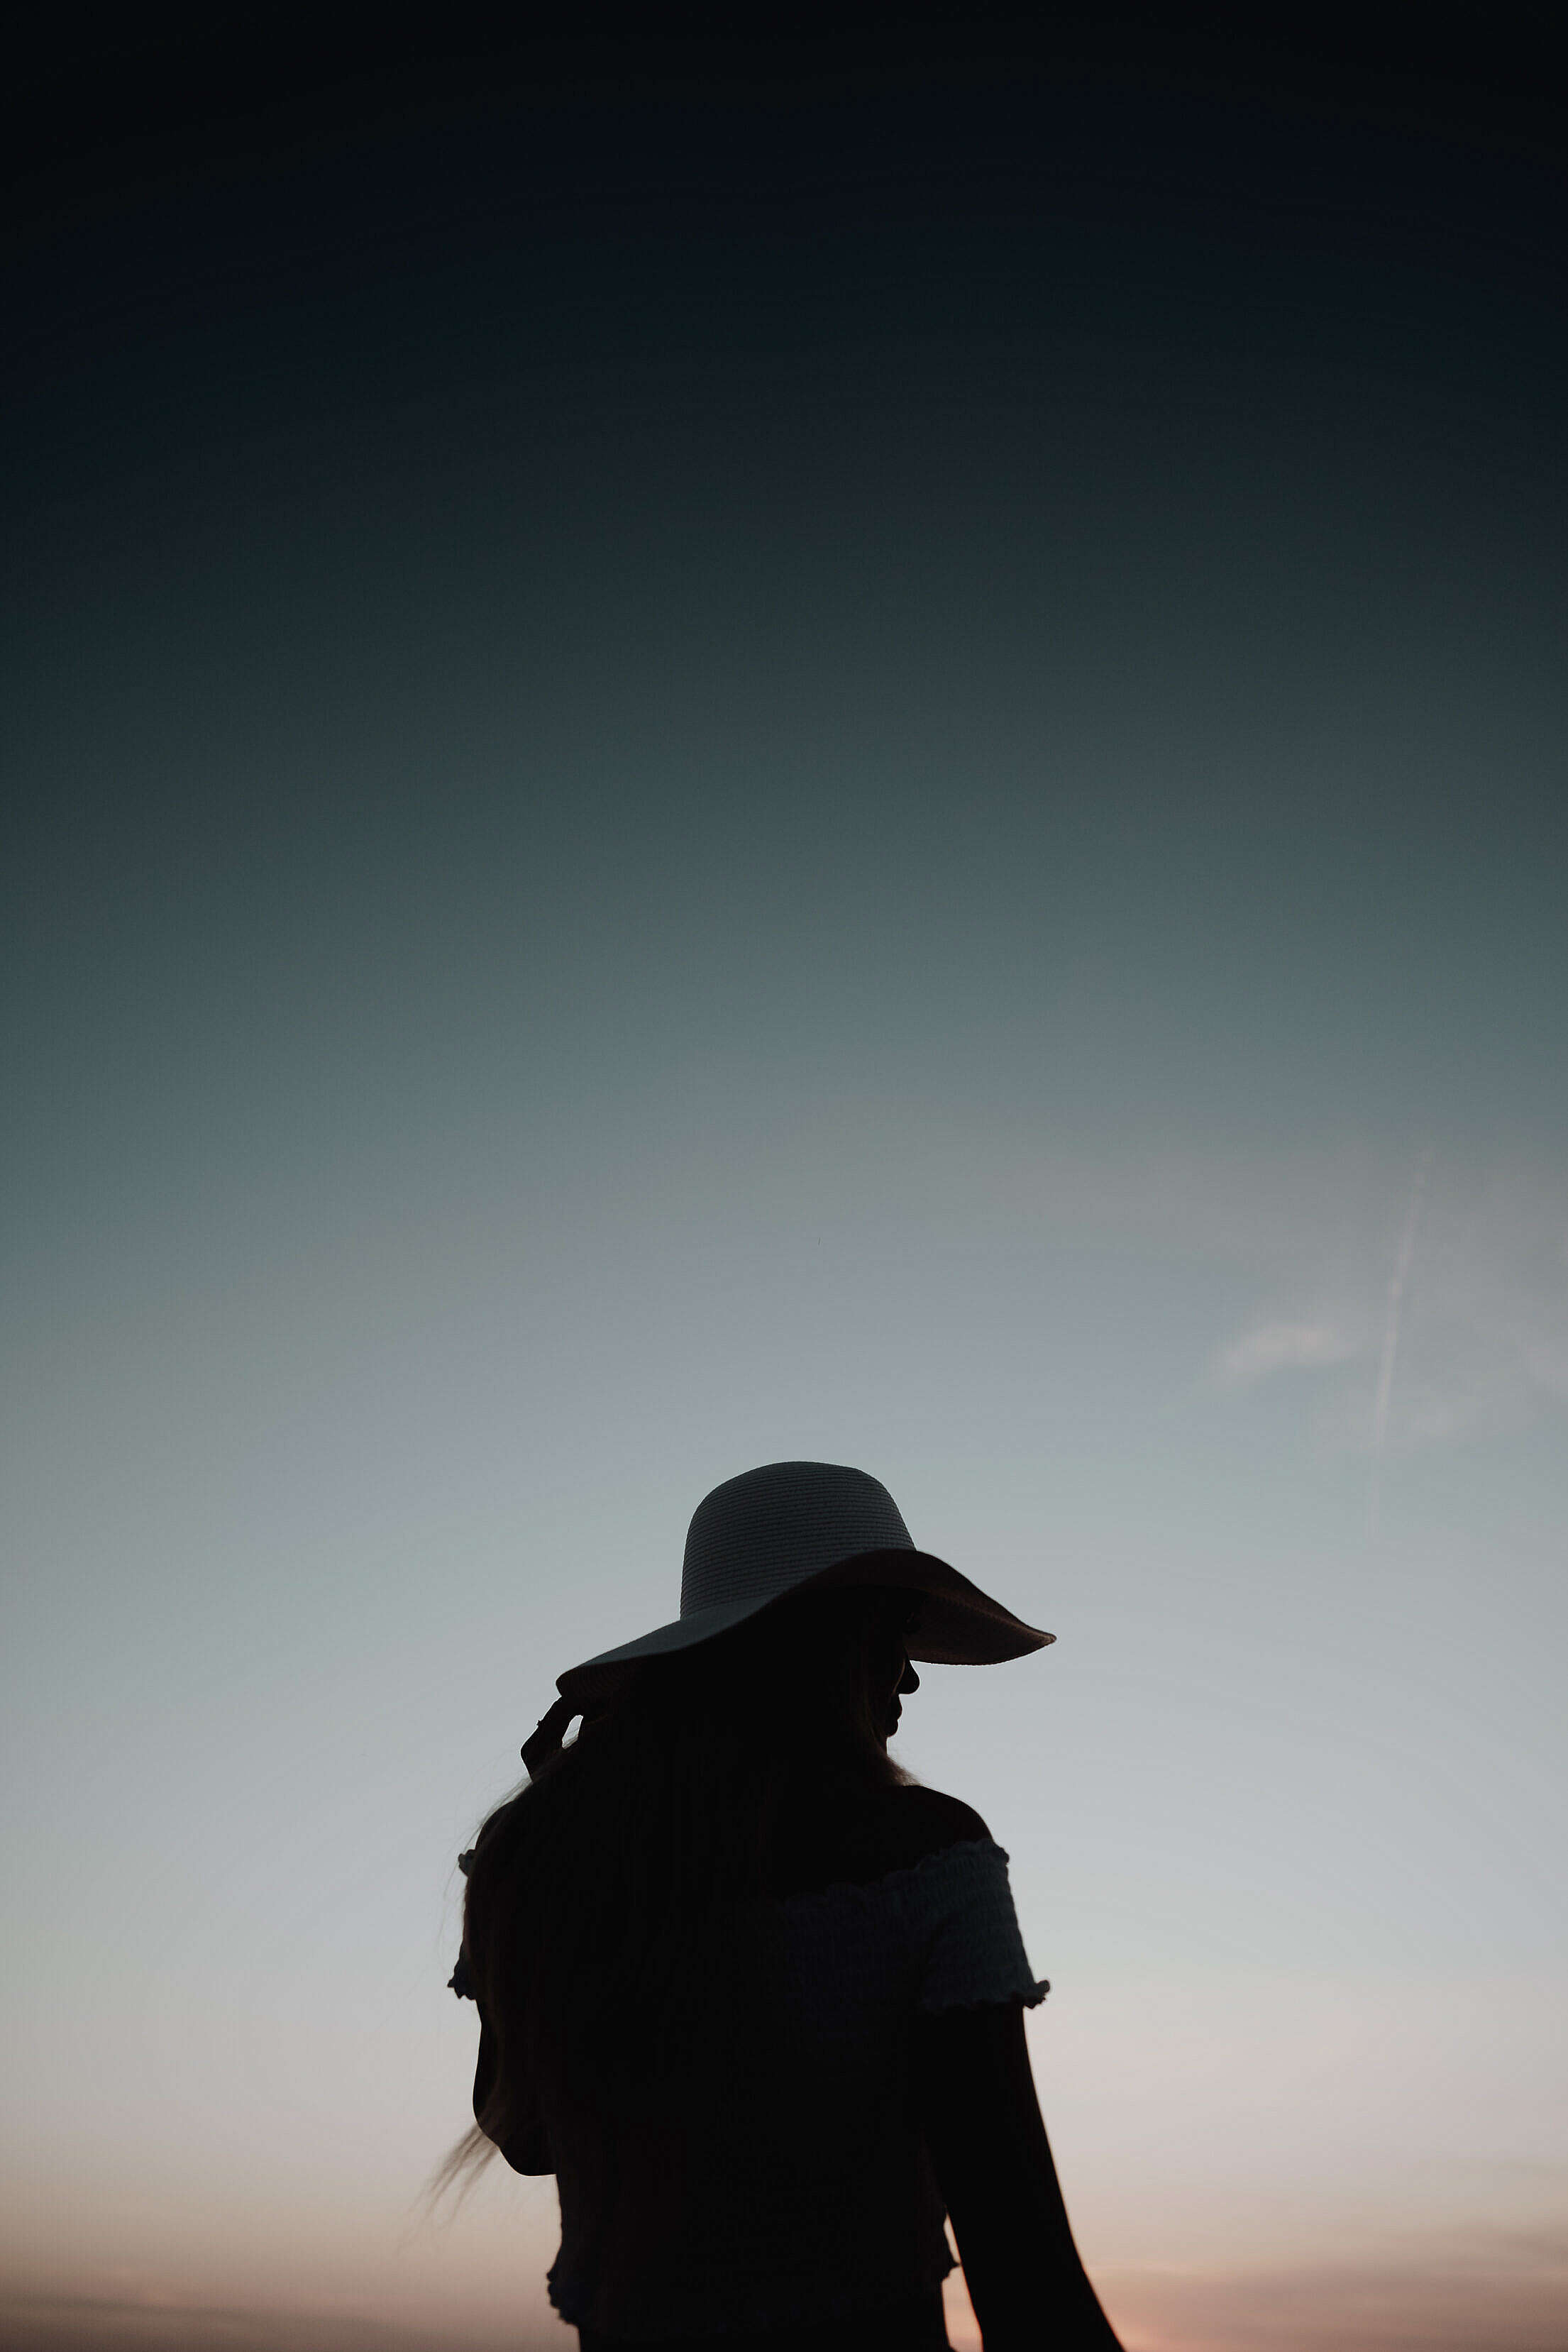 Silhouette of a Woman at Sunset by The Sea Free Stock Photo